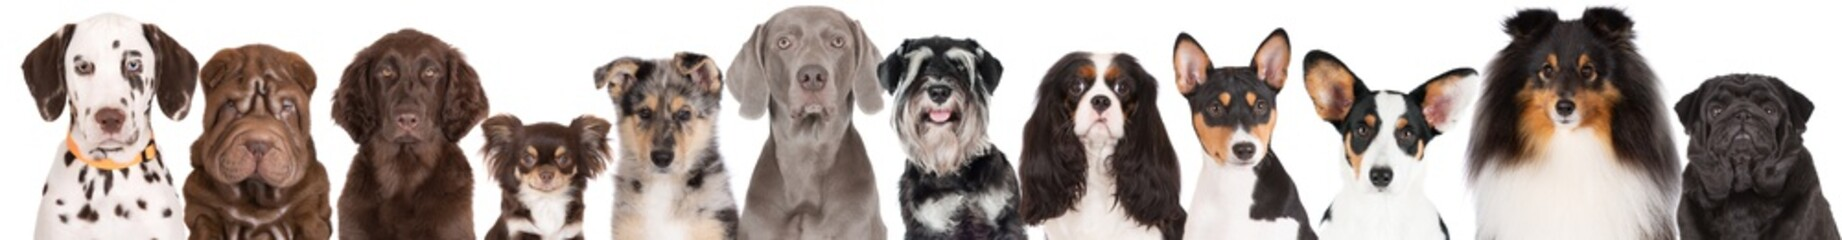 group of dogs portraits on white background